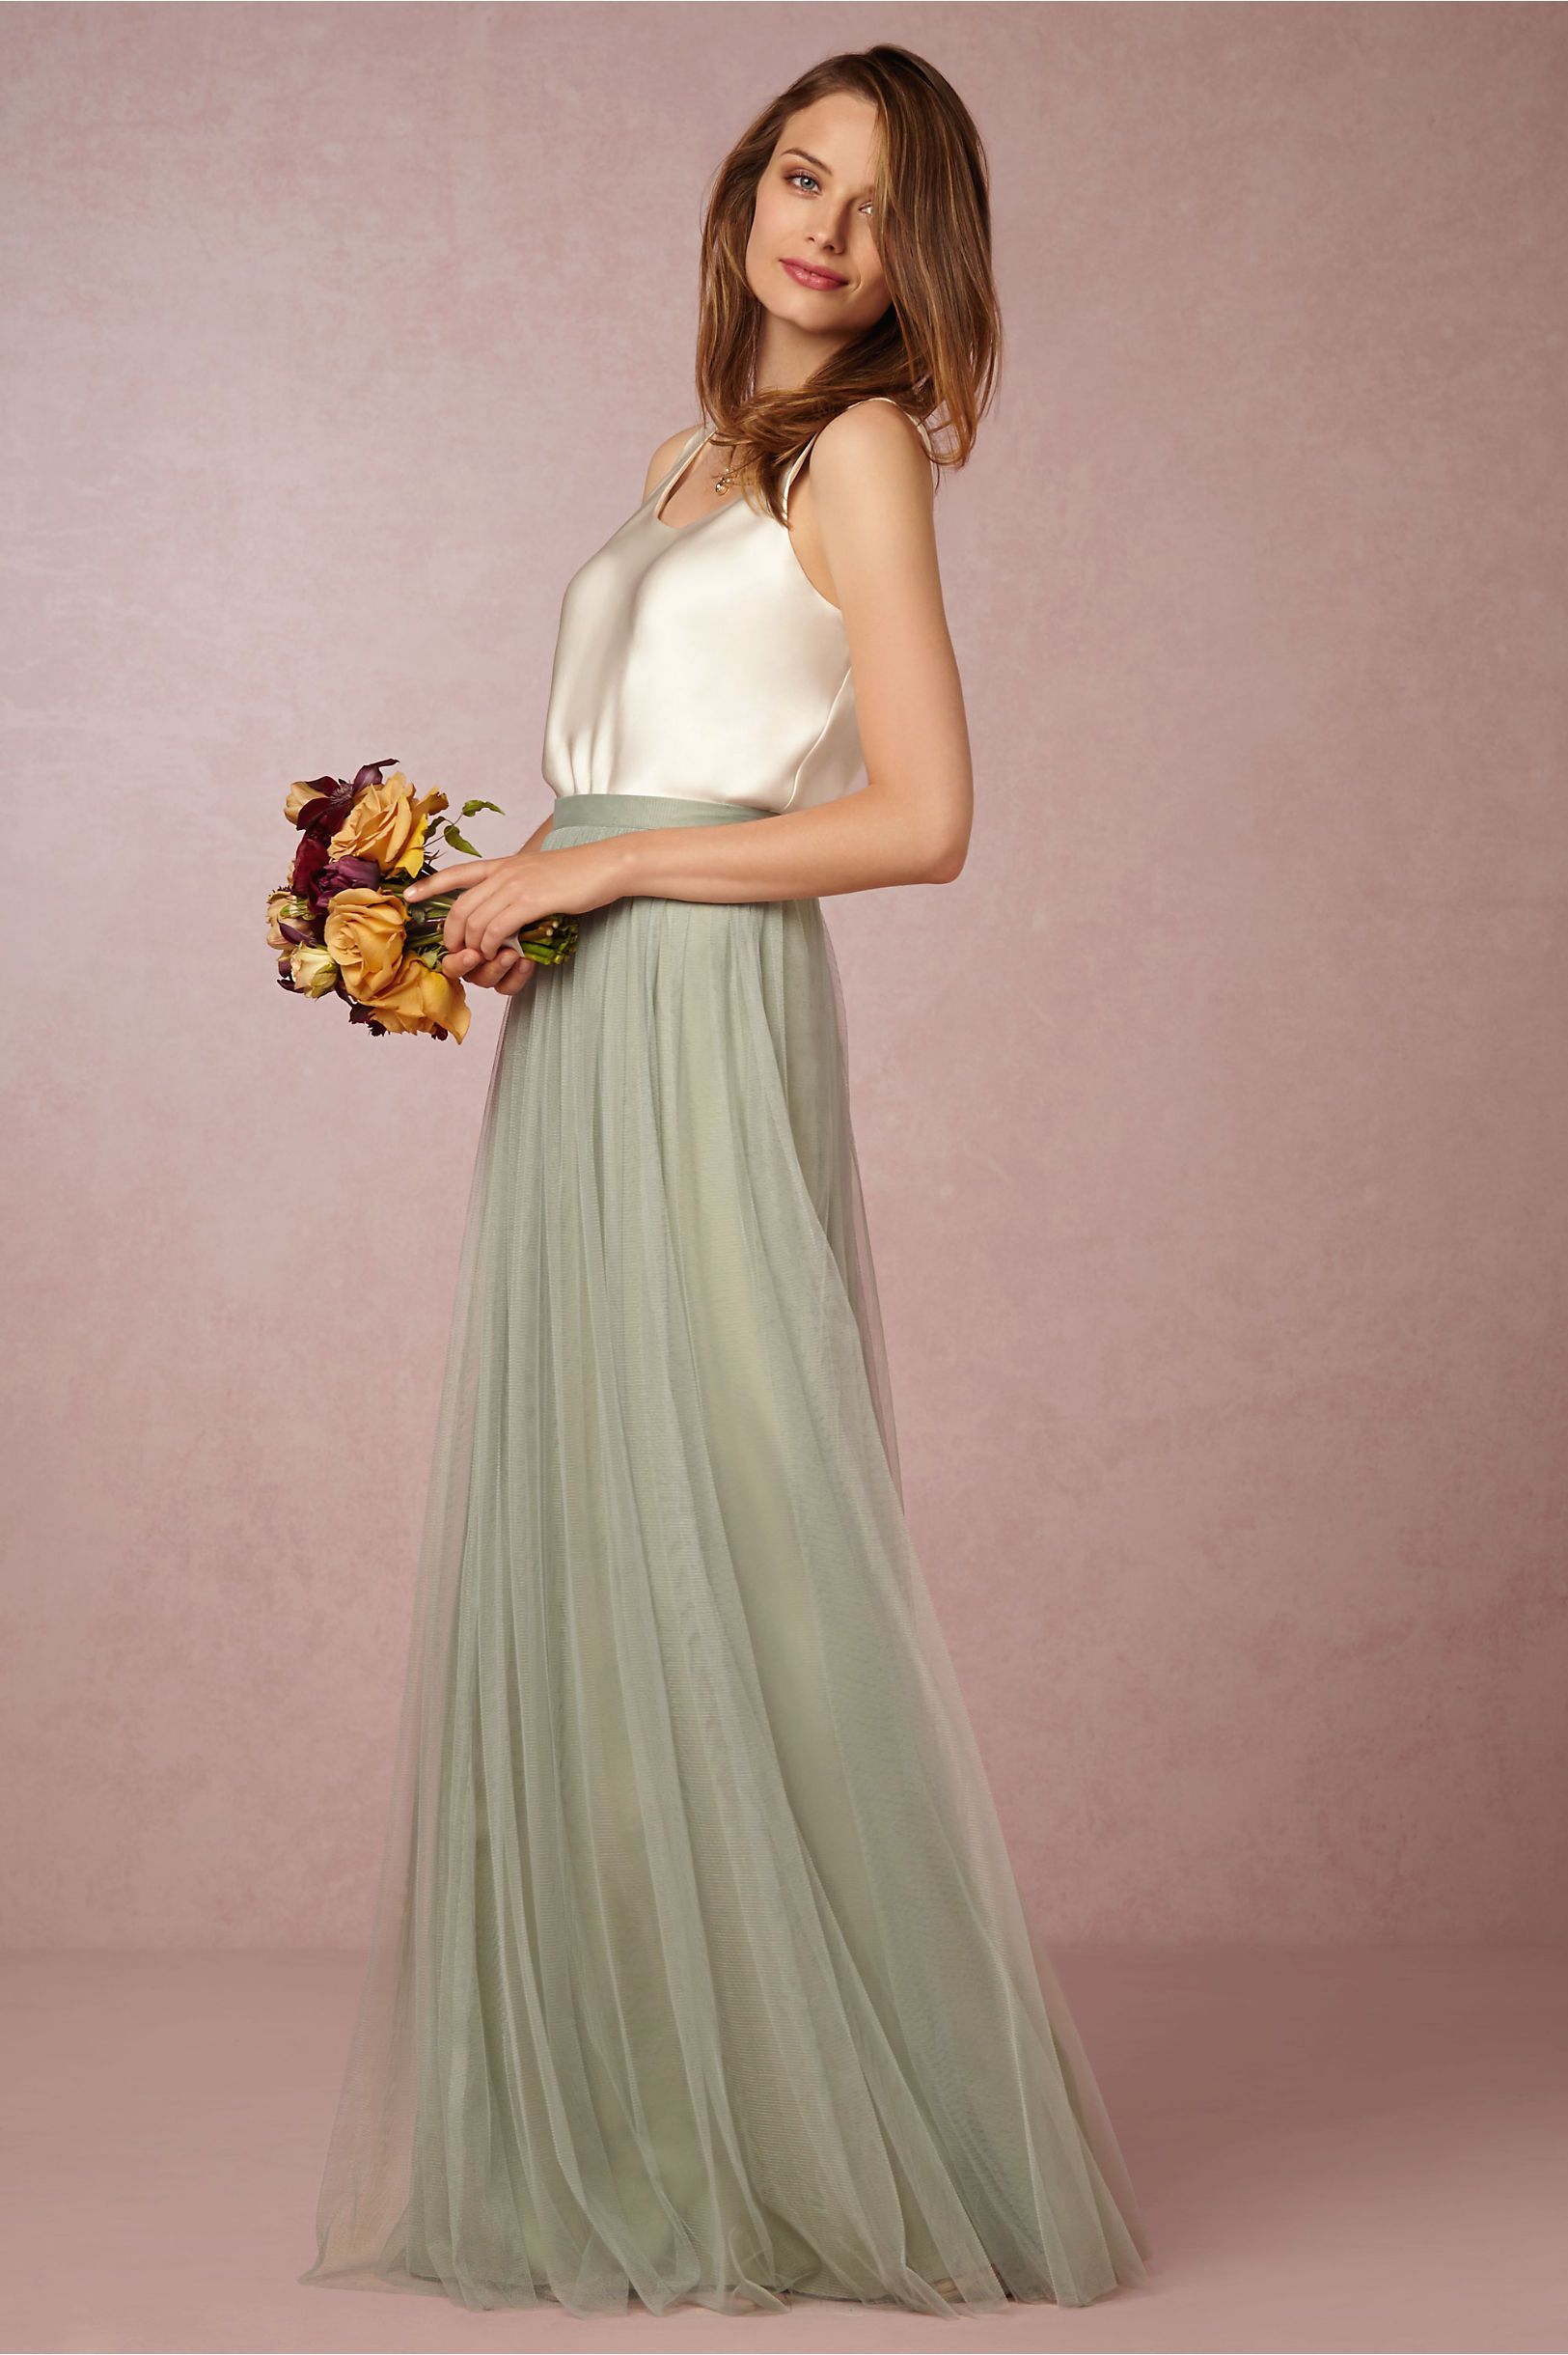 Louise Tulle Skirt in Bridesmaids Bridesmaid Dresses at BHLDN ...